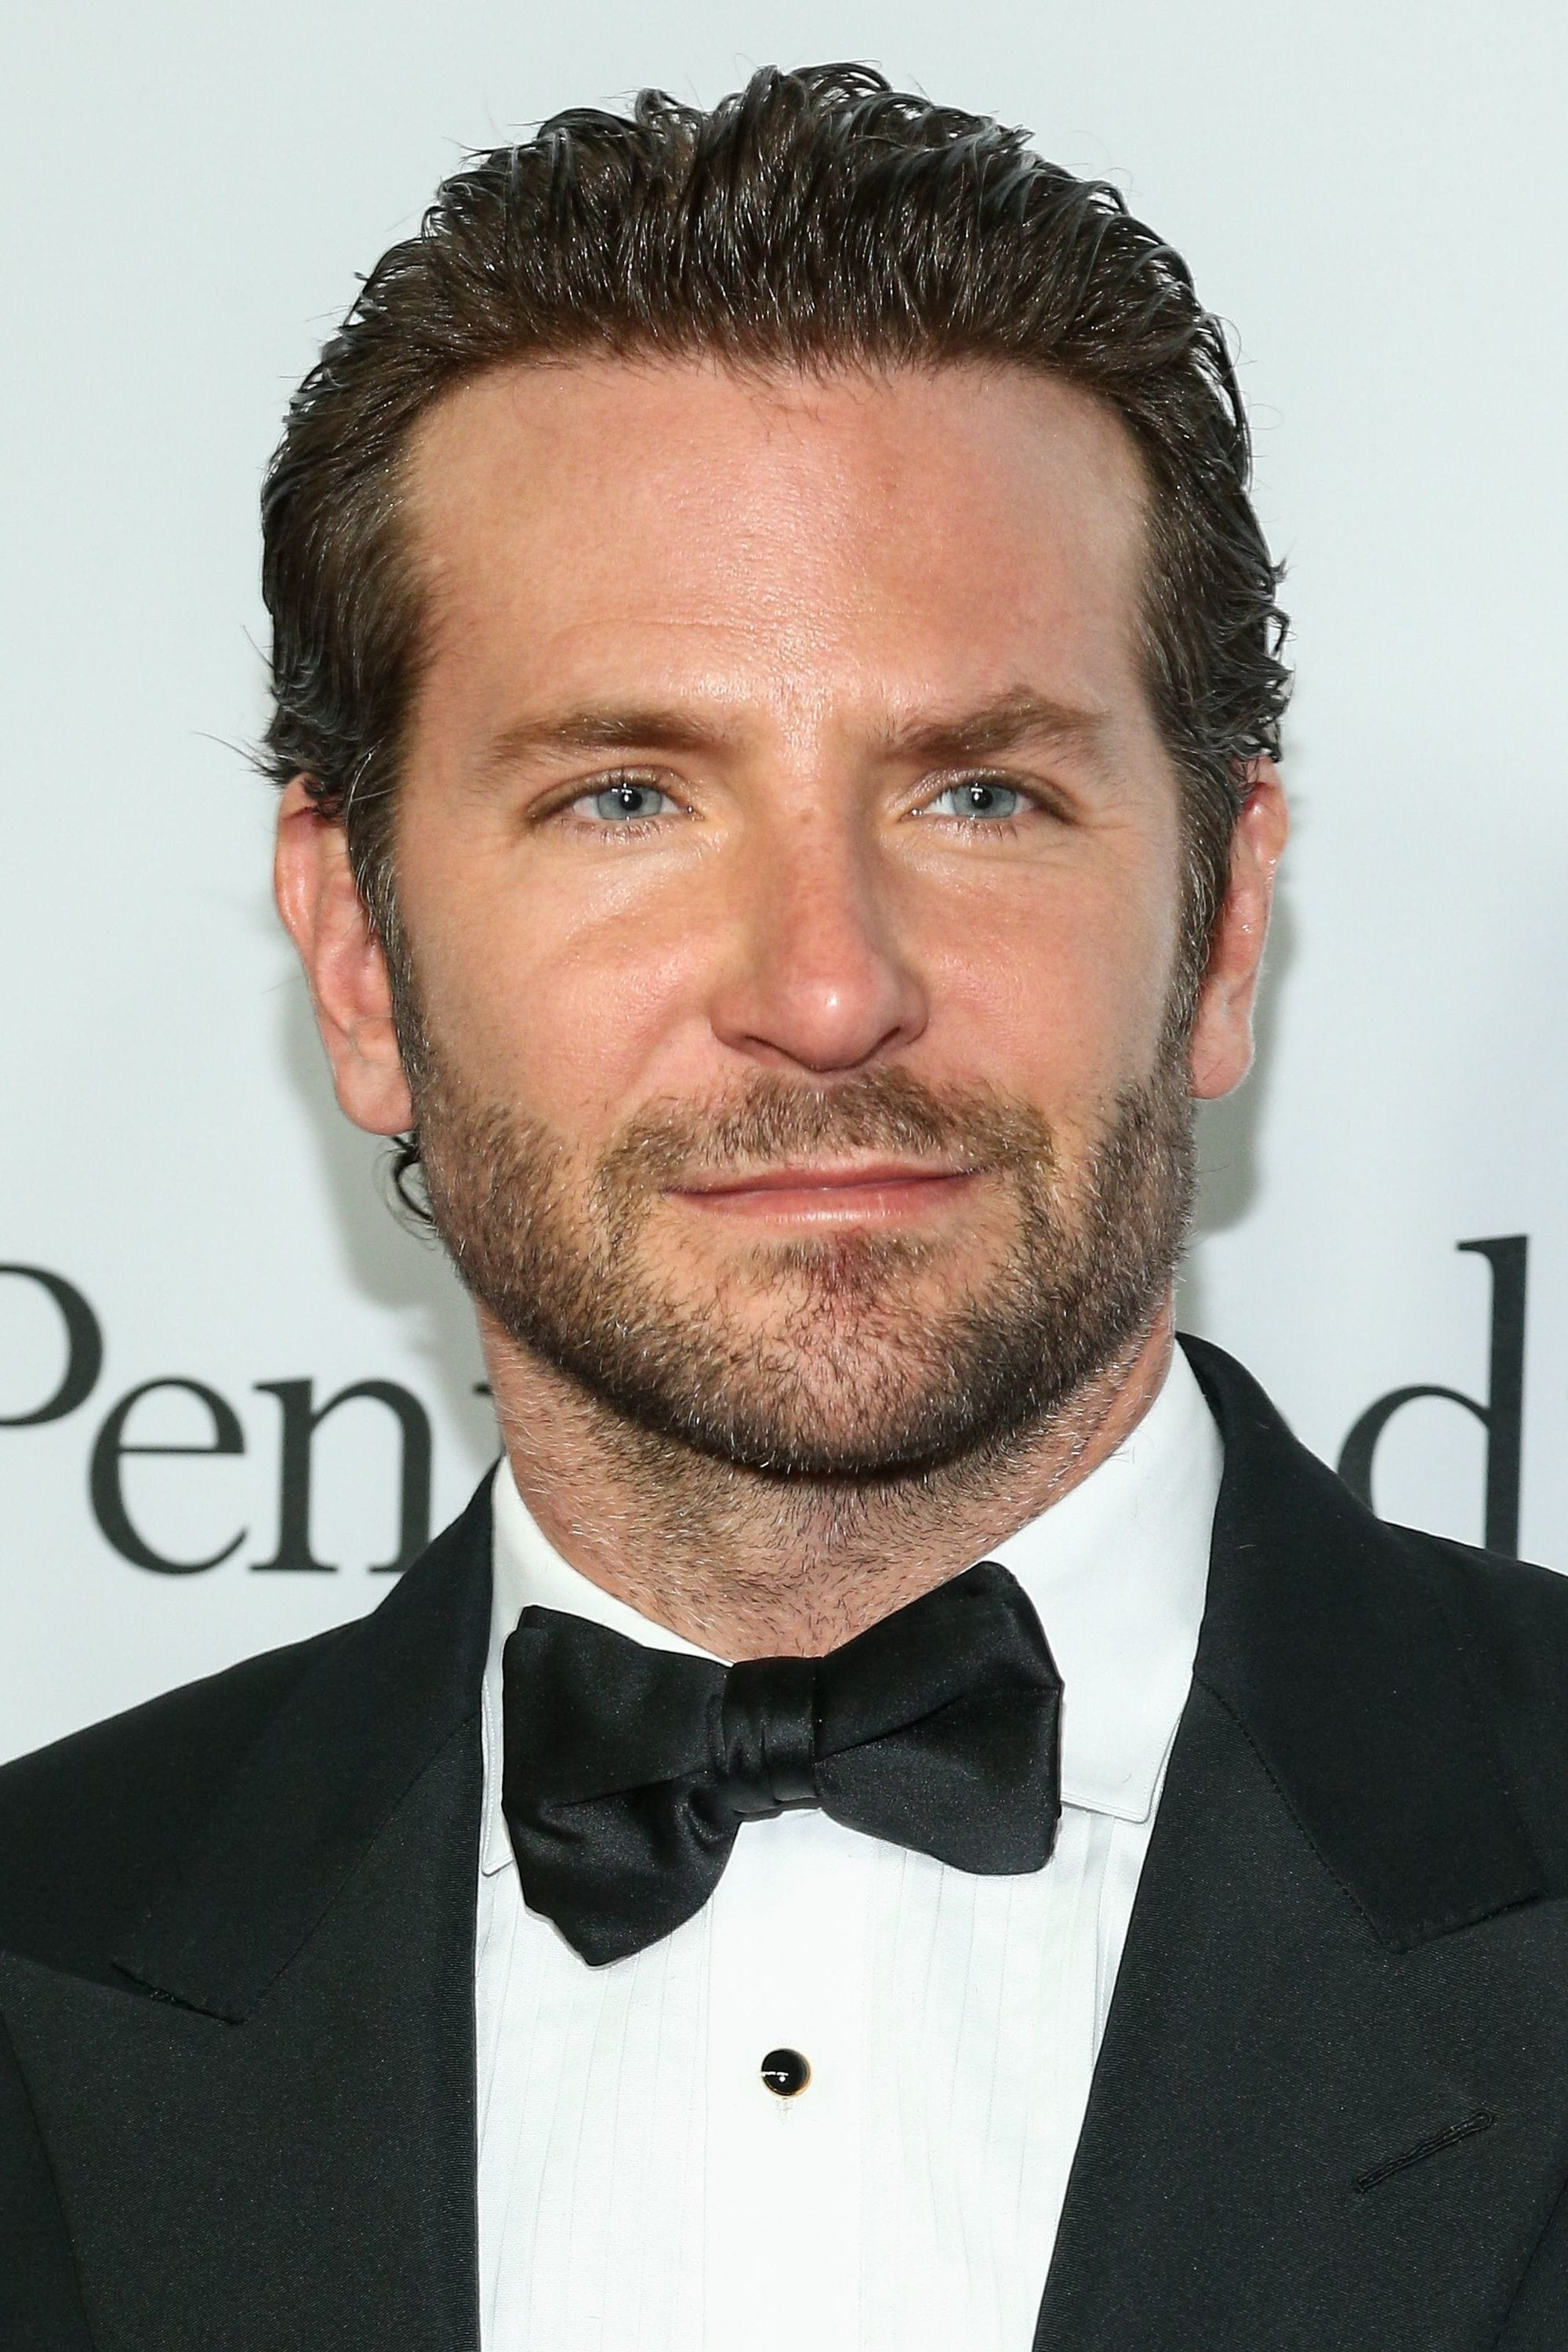 Hairstyles for receding hairline: Headshot of Bradley Cooper with combed back dark flow hair, wearing a tux and black bow tie